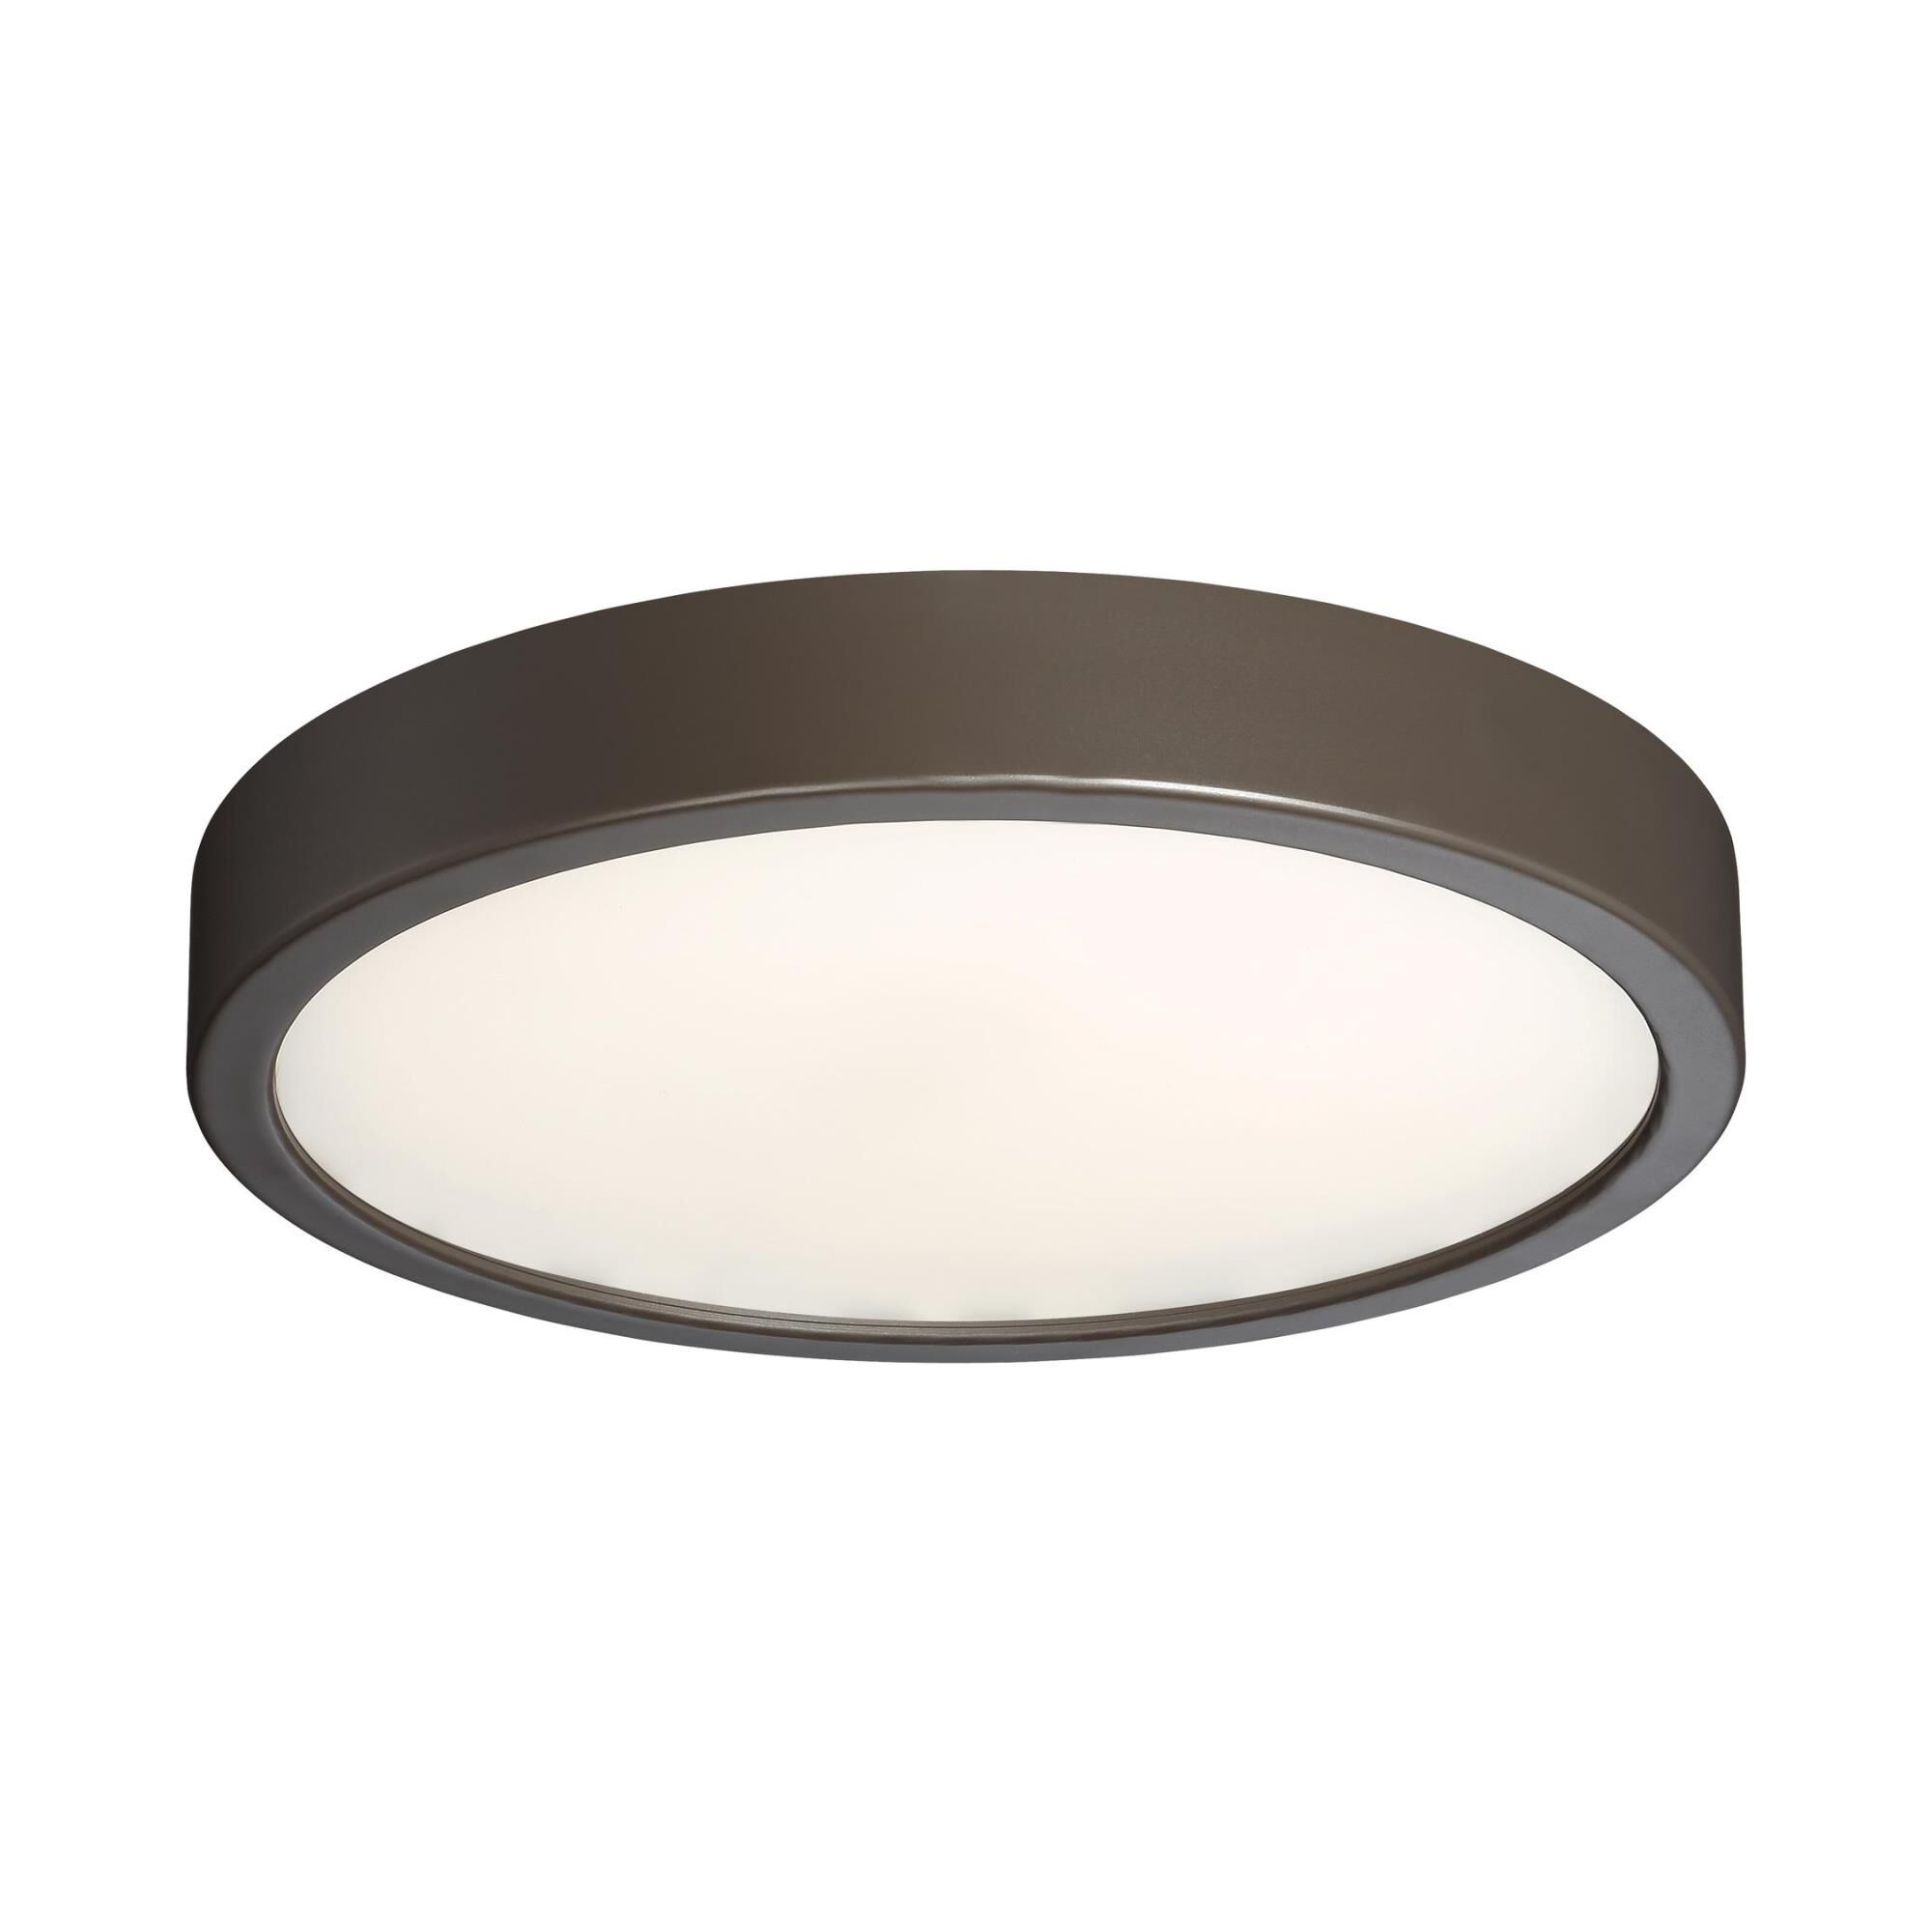 Kovacs 10 Inch 1 Light Led Flush Mount - P842-647b-l - Transitional